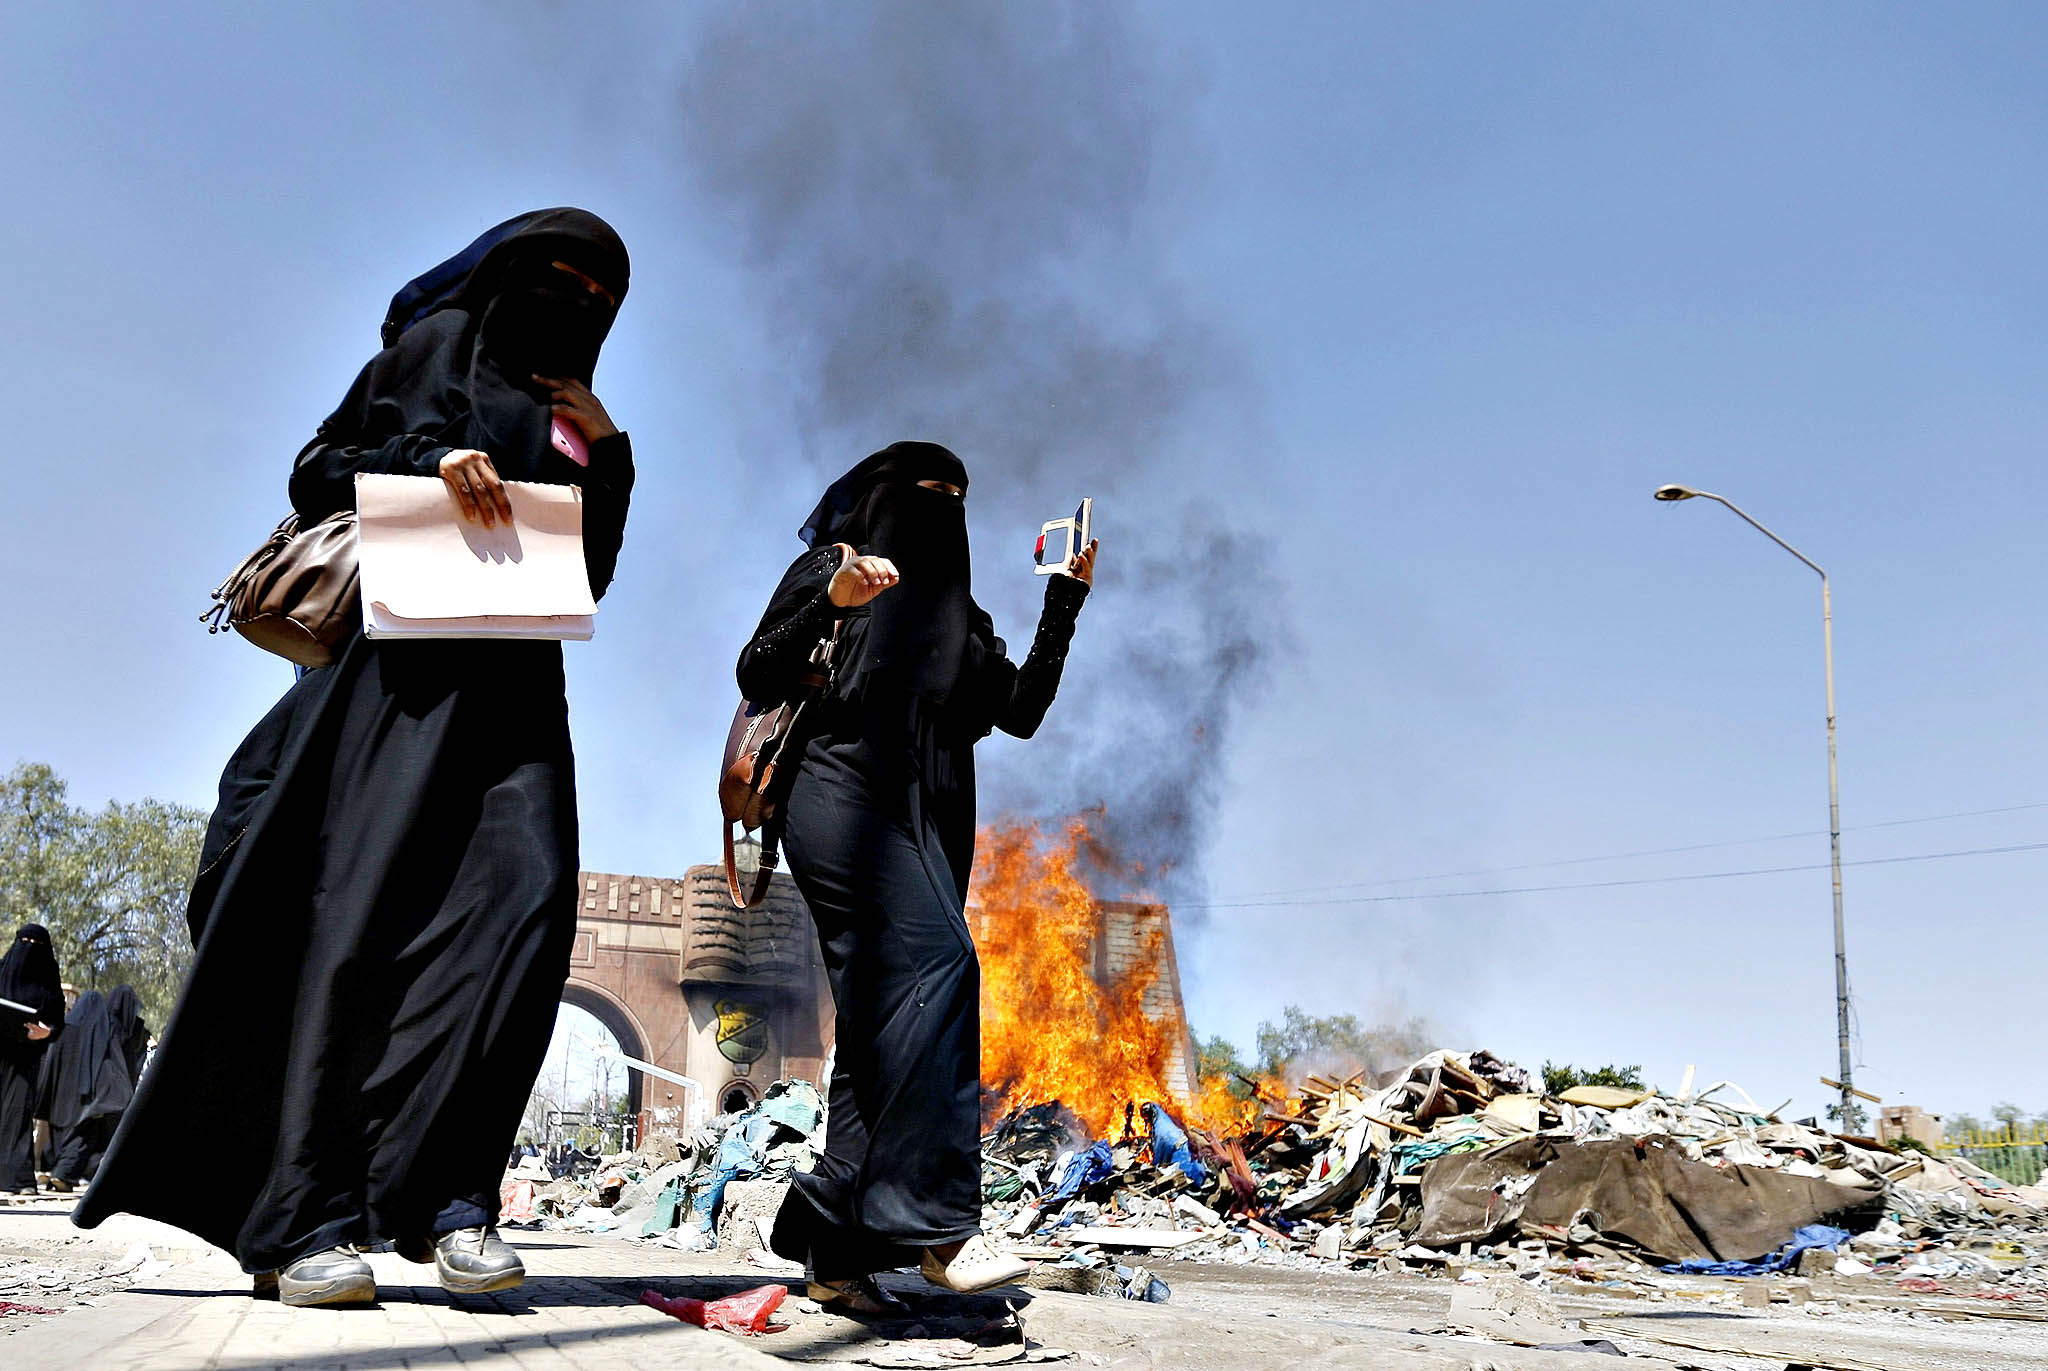 Women walk past demolished huts set on fire at Taghyeer (Change) Square in Sanaa November 10, 2014. Authorities had deployed riot police and used bulldozers to demolish the huts set up by pro-democracy protesters when they had camped in the square to demand a regime change in 2011. These temporary shelters had not been removed from the square after protesters vacated it last year. It was not immediately apparent who had set the demolished huts on fire.